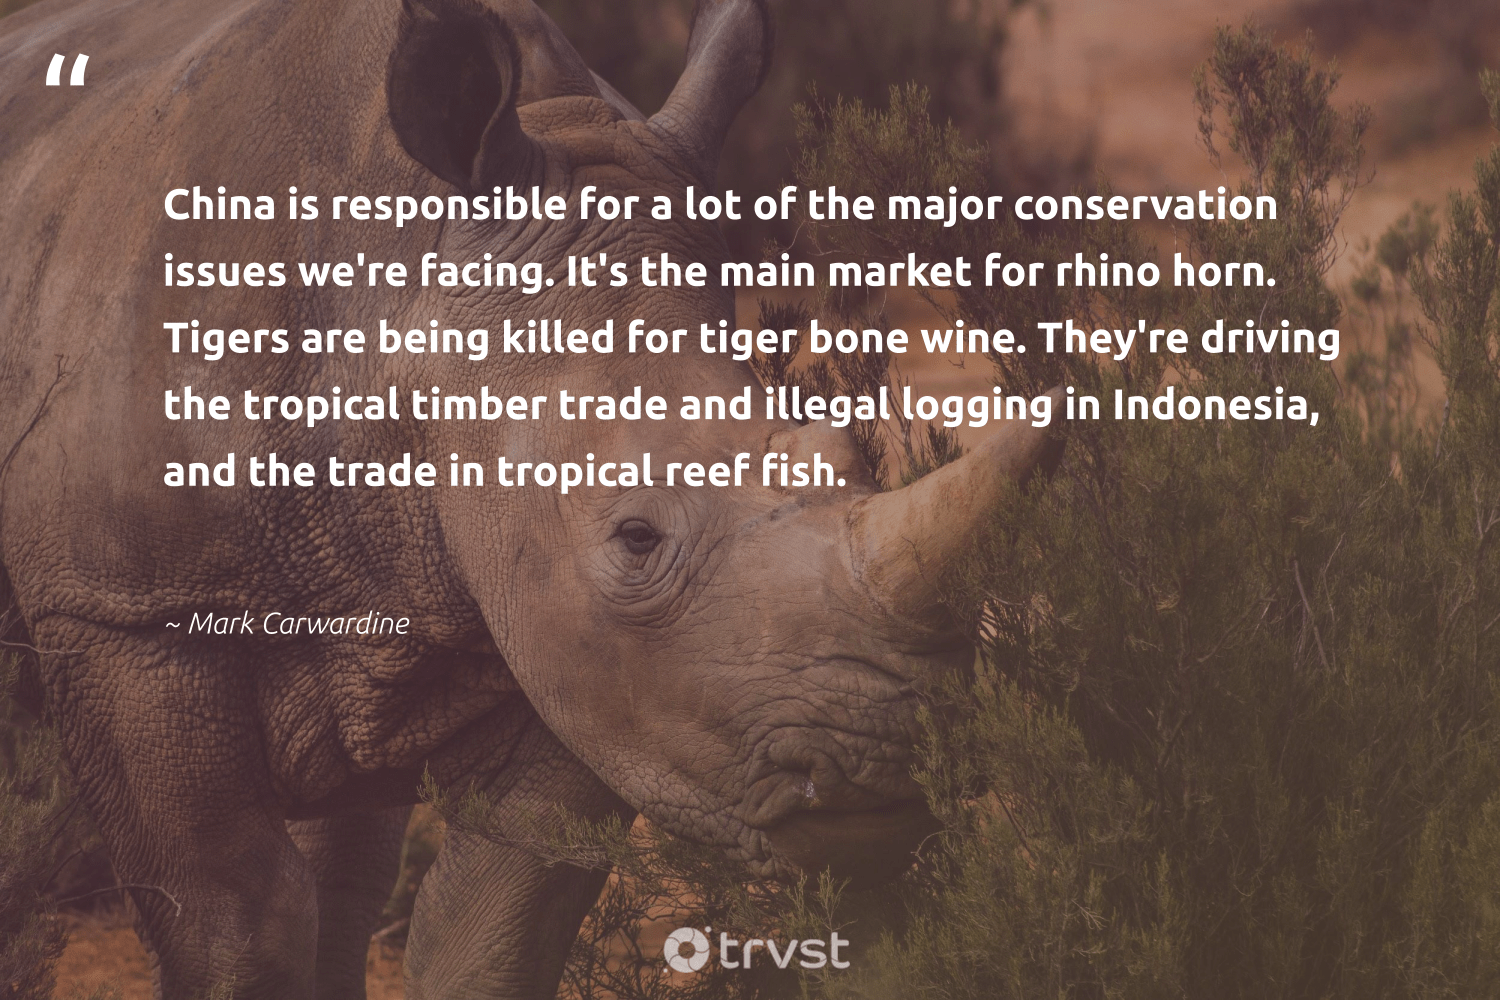 """""""China is responsible for a lot of the major conservation issues we're facing. It's the main market for rhino horn. Tigers are being killed for tiger bone wine. They're driving the tropical timber trade and illegal logging in Indonesia, and the trade in tropical reef fish.""""  - Mark Carwardine #trvst #quotes #conservation #tiger #fish #rhino #tigers #nature #bigfive #getoutside #collectiveaction #earth"""